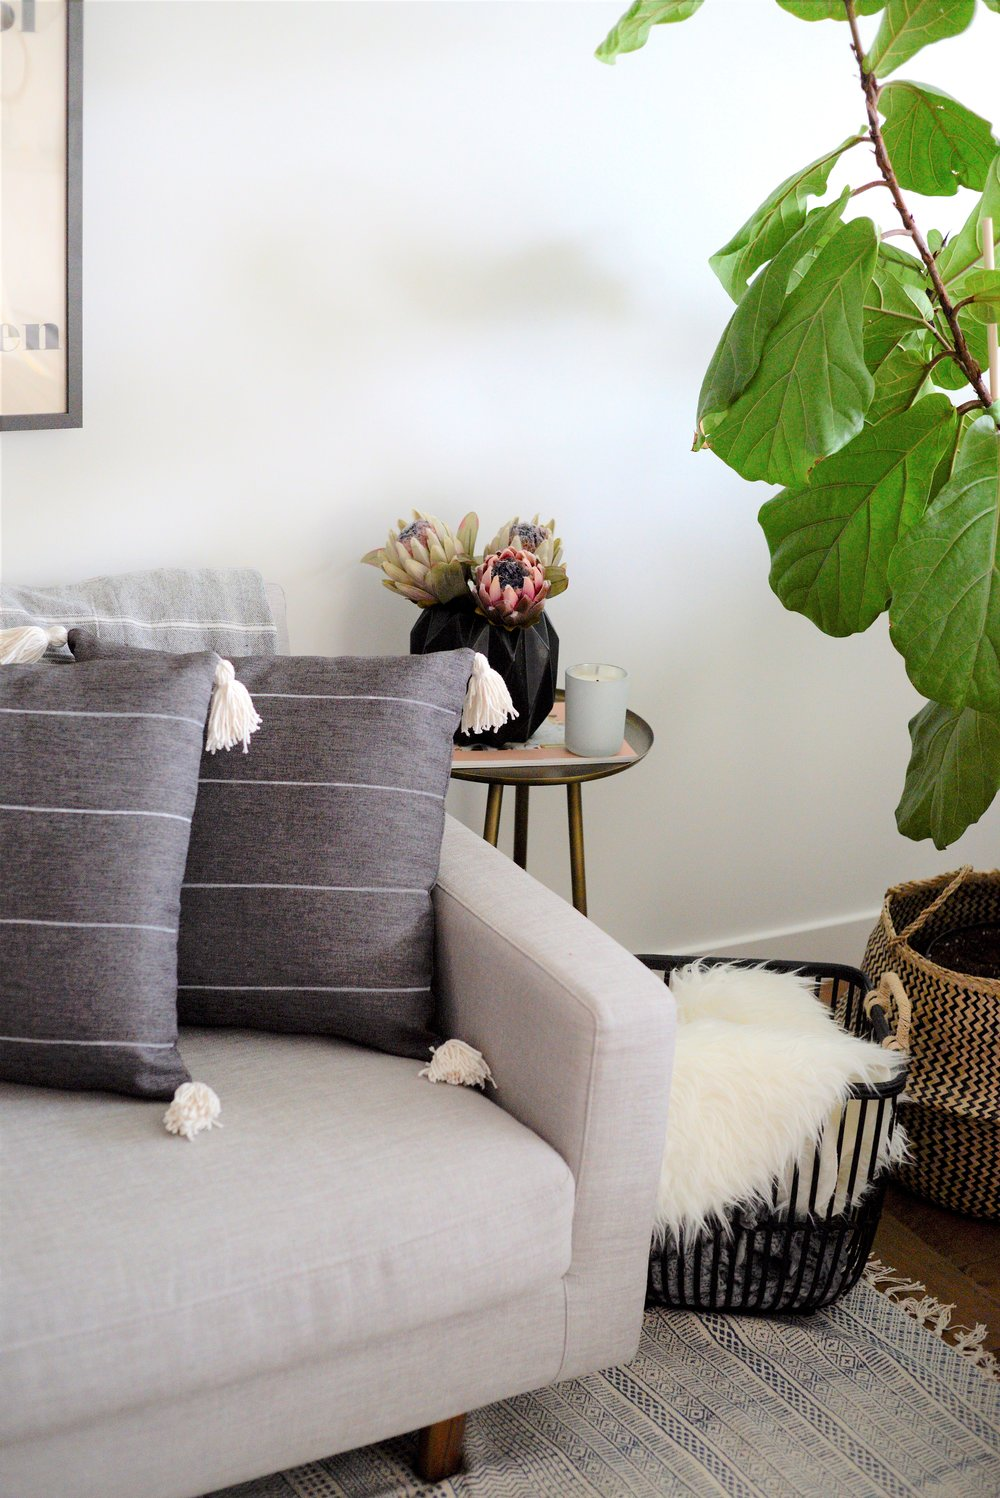 grey striped cushion with tassels